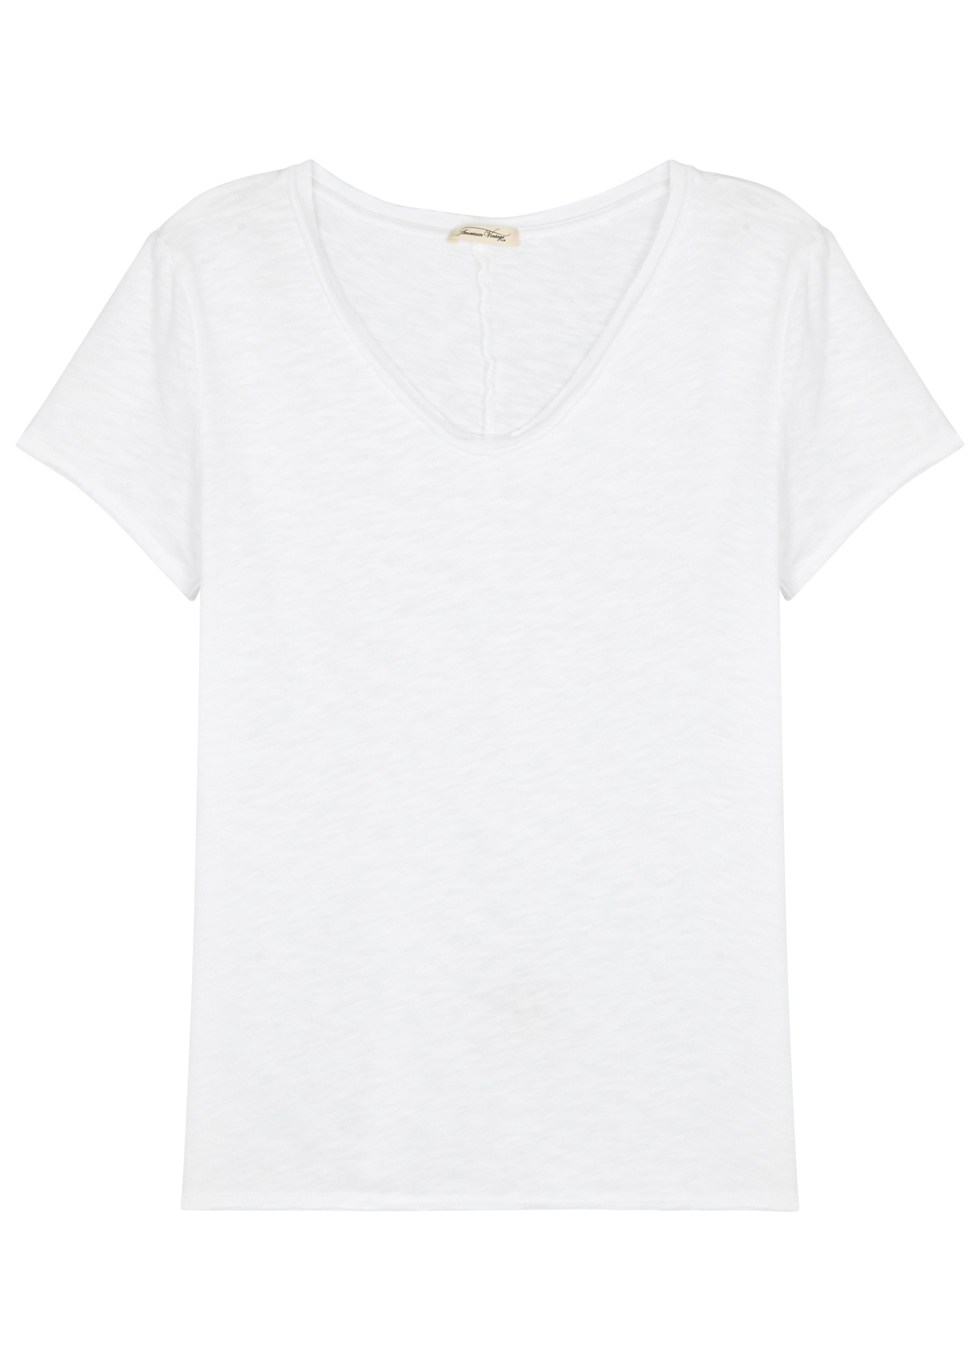 AMERICAN VINTAGE SONOMA OFF-WHITE COTTON T-SHIRT